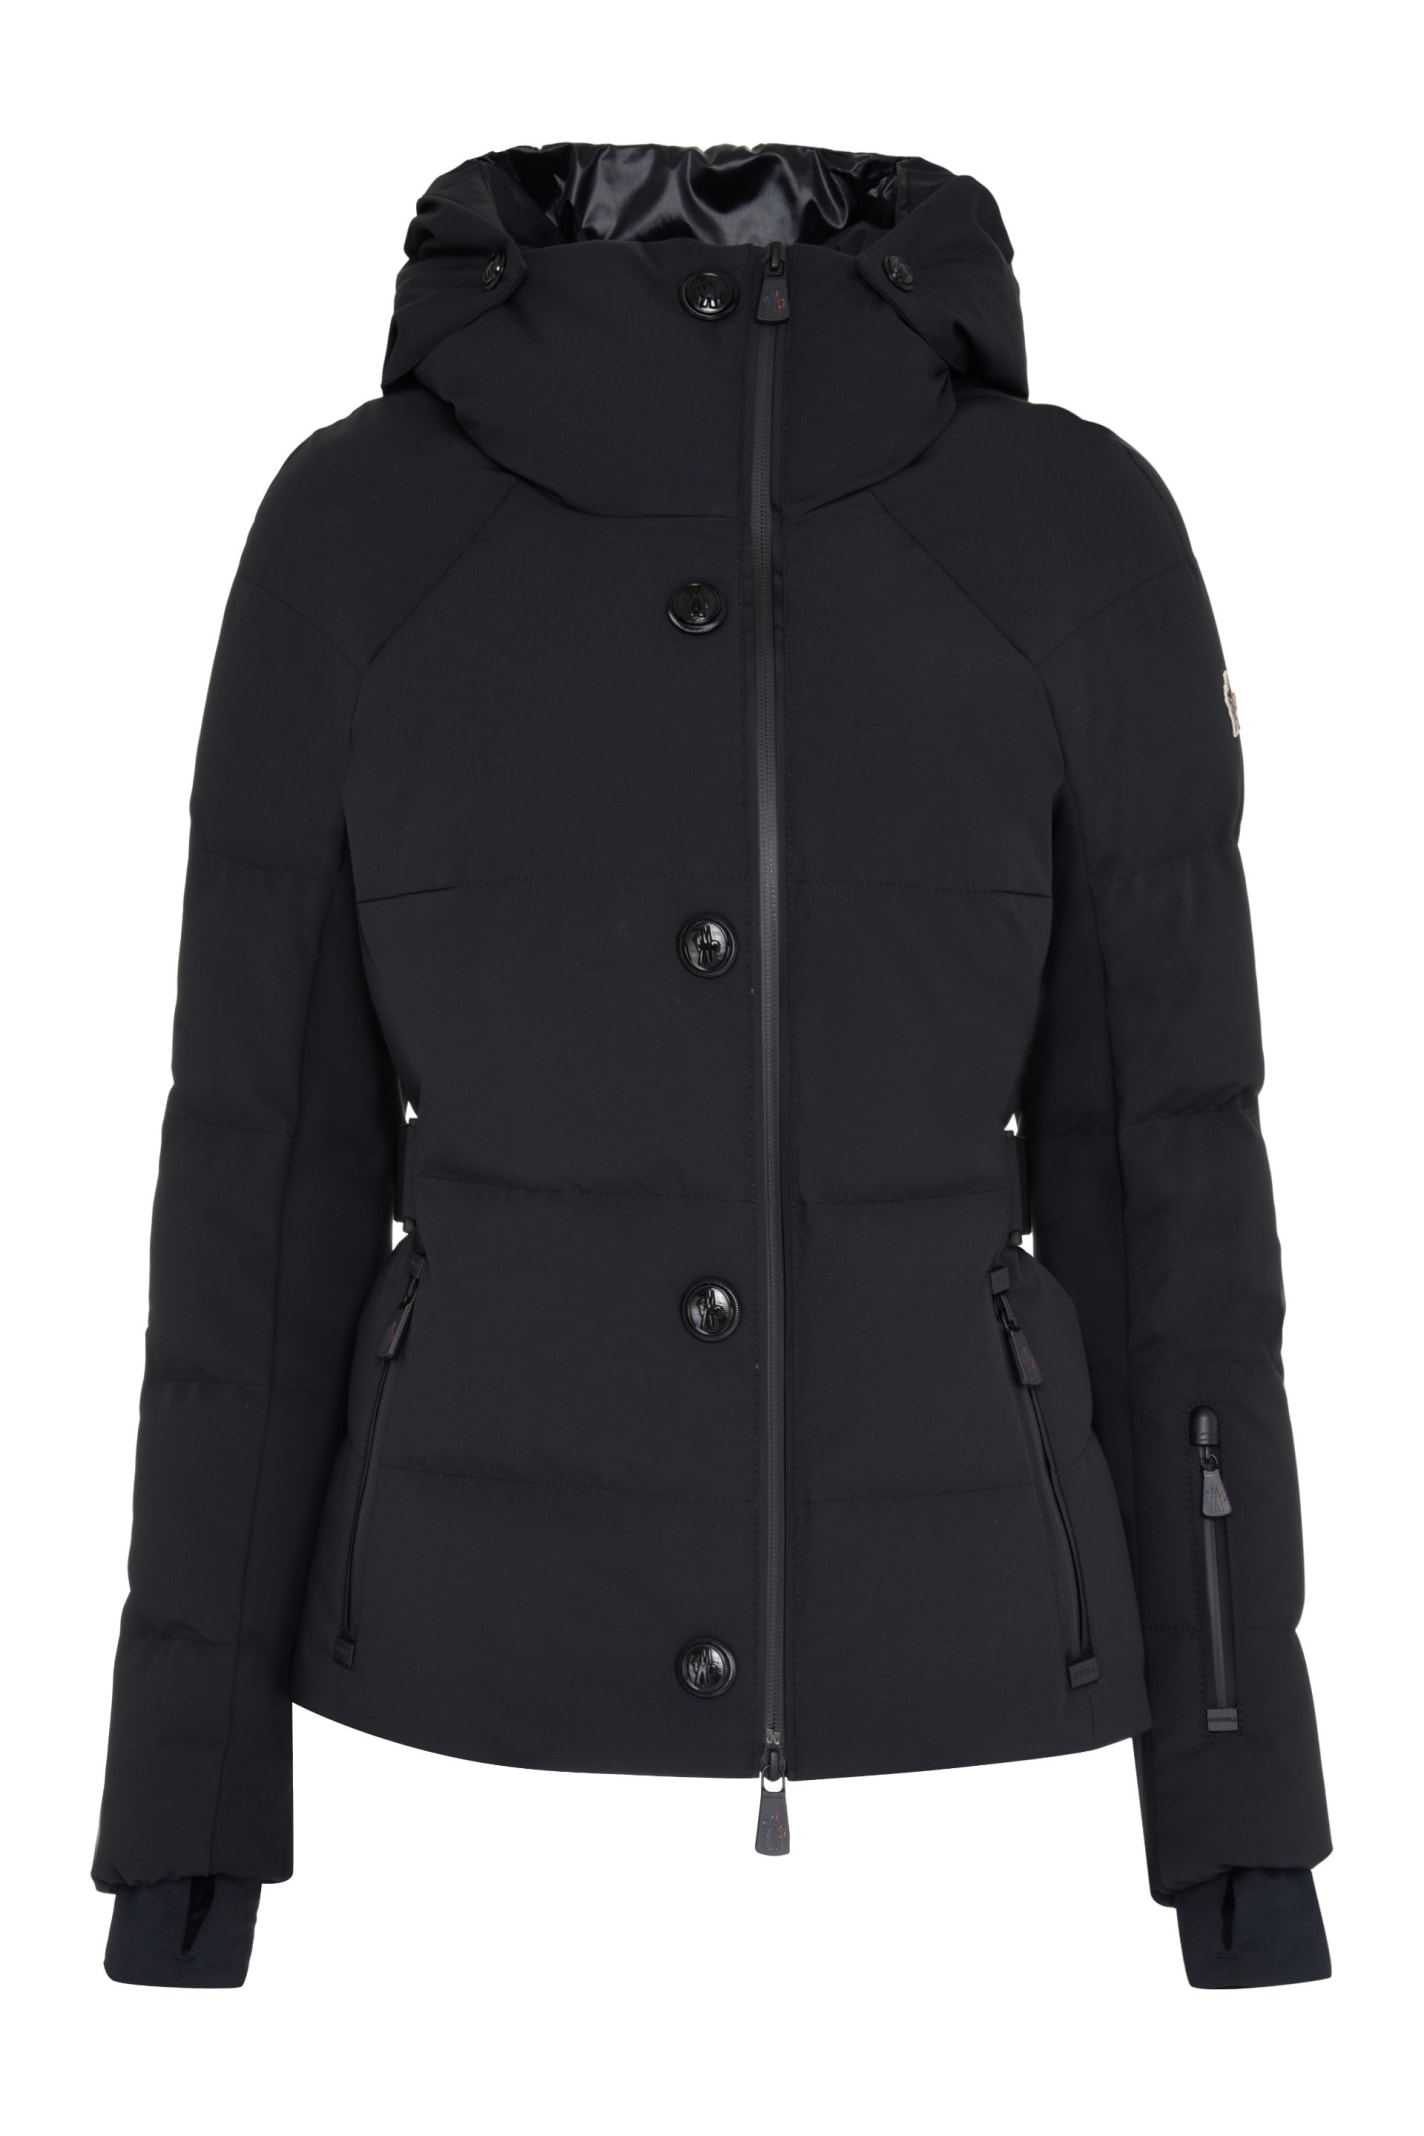 Moncler Grenoble Guyane Hooded Short Down Jacket